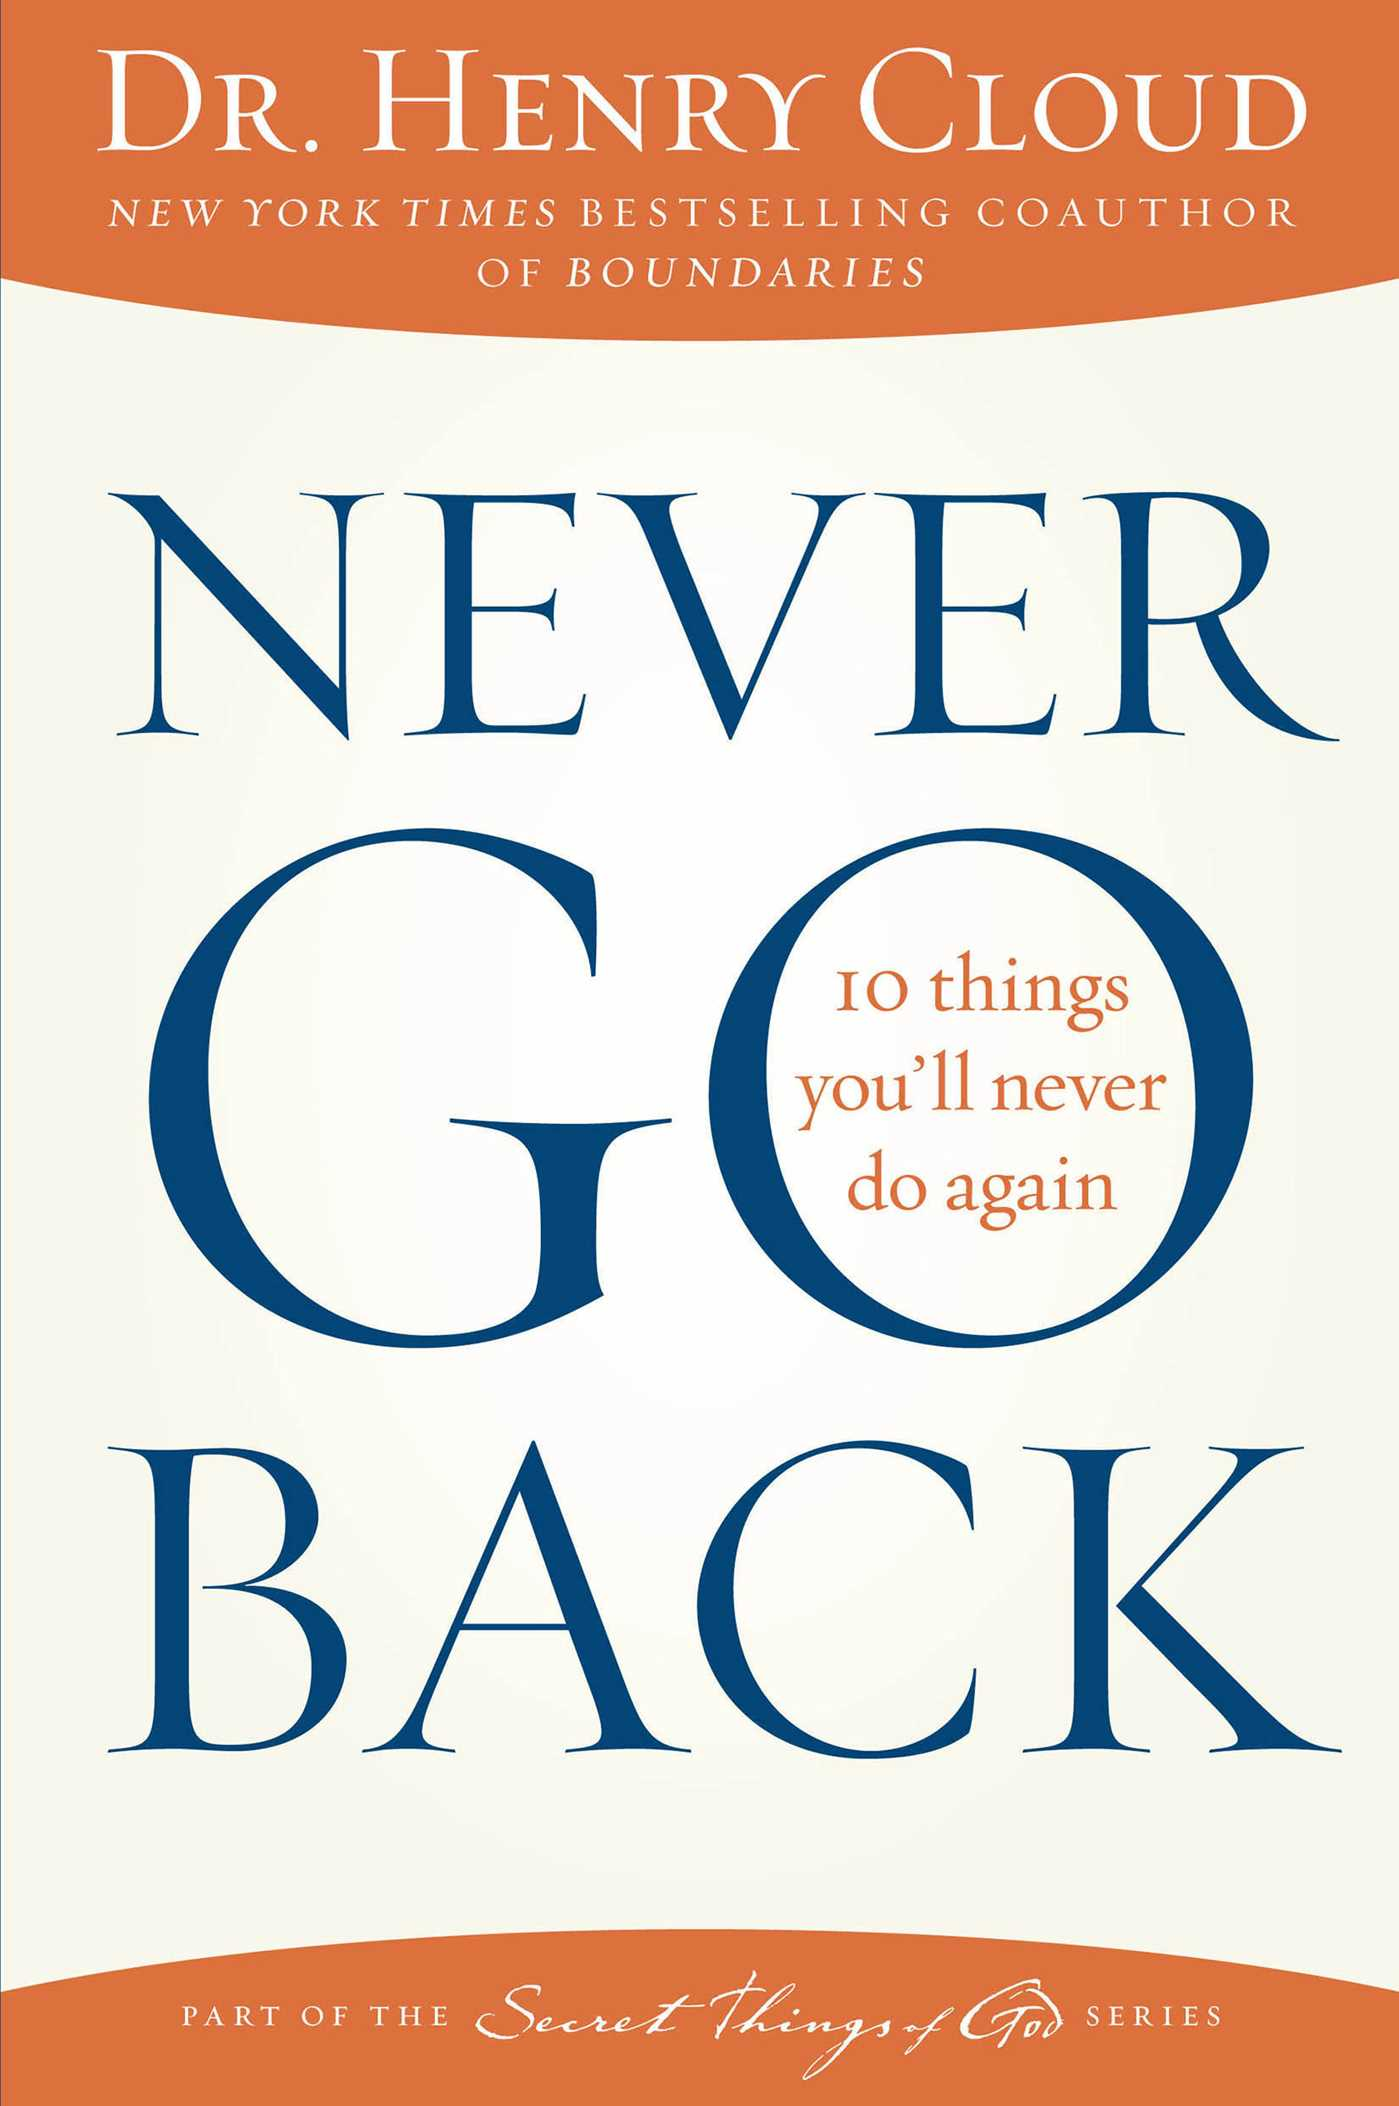 Never-go-back-9781451669312_hr